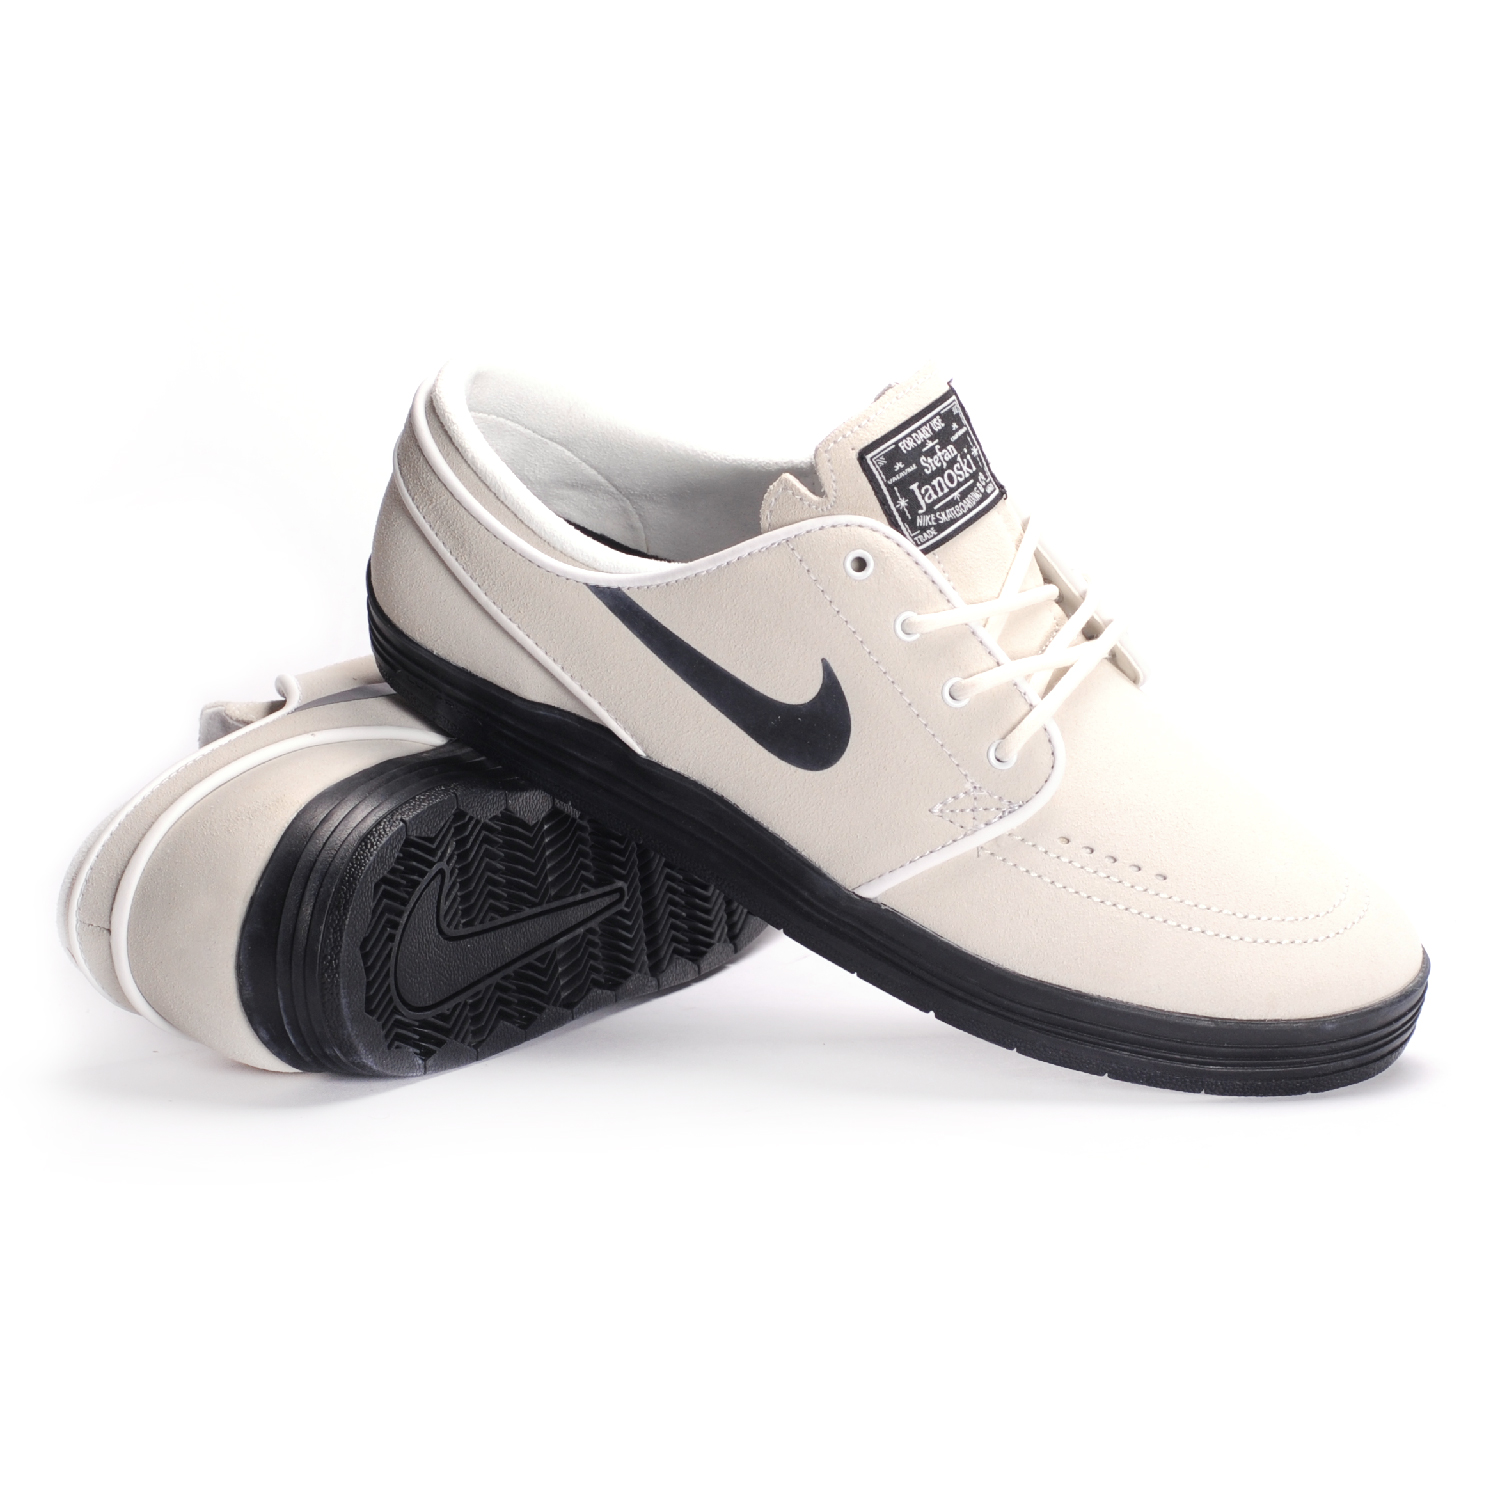 nike sb lunar stefan janoski summit white black men 39 s. Black Bedroom Furniture Sets. Home Design Ideas